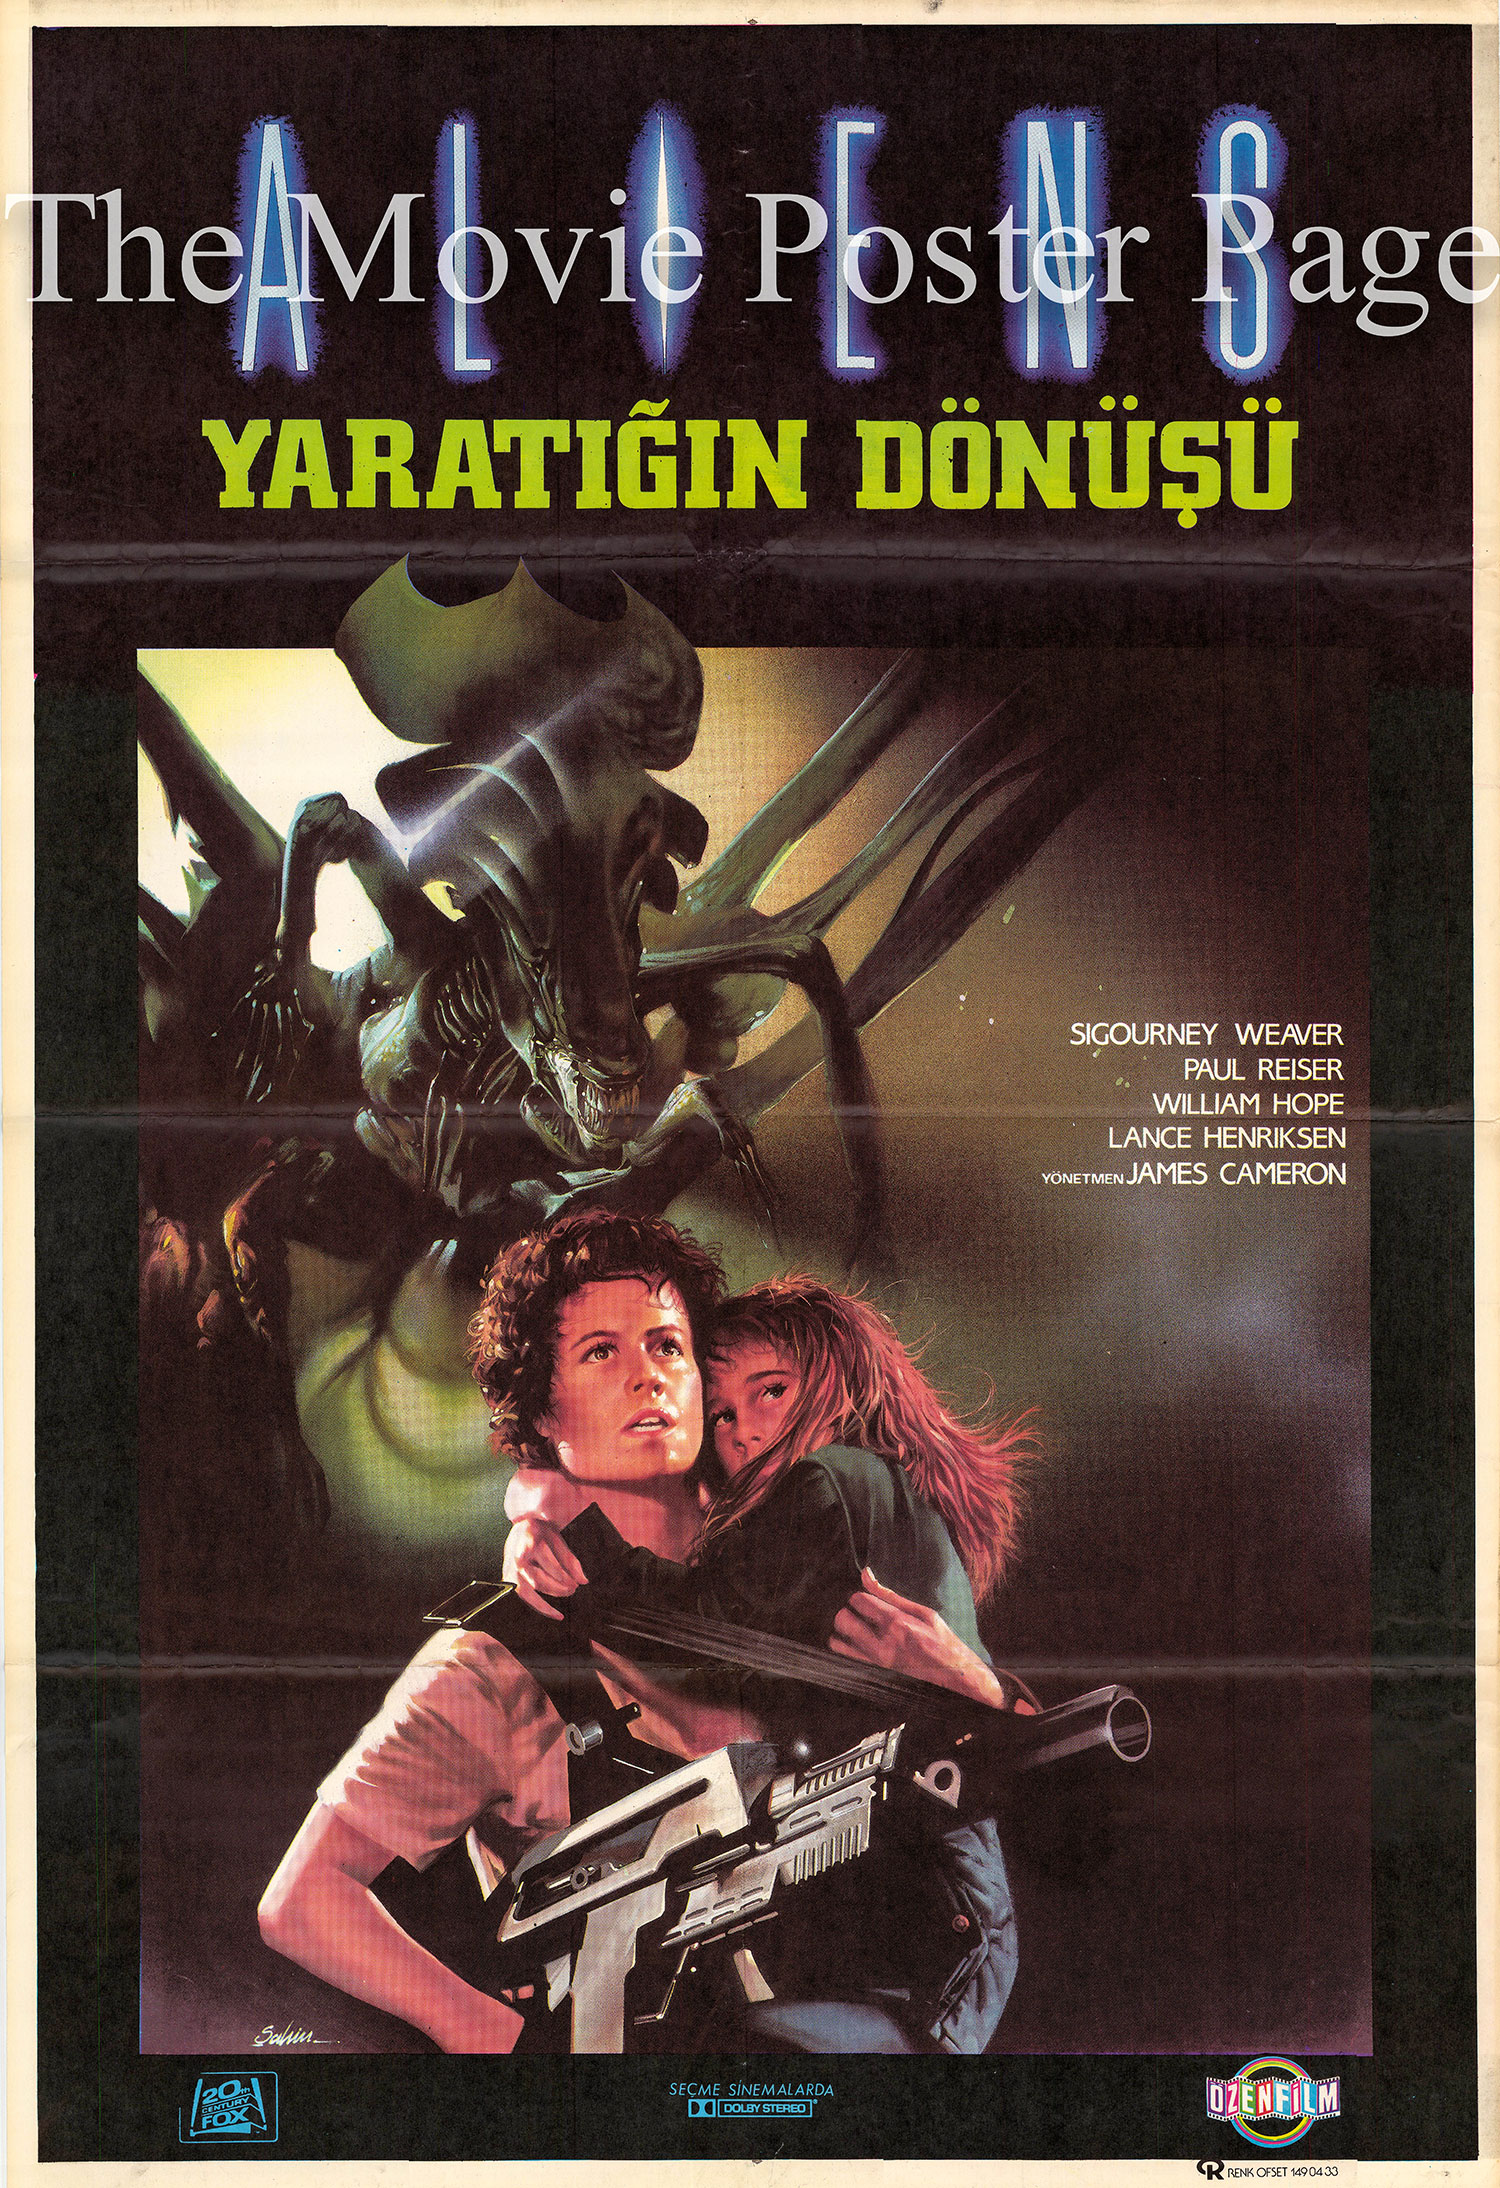 Pictured is a Turkish one-sheet poster for the 1986 James Cameron film Aliens starring Sigourney Weaver.